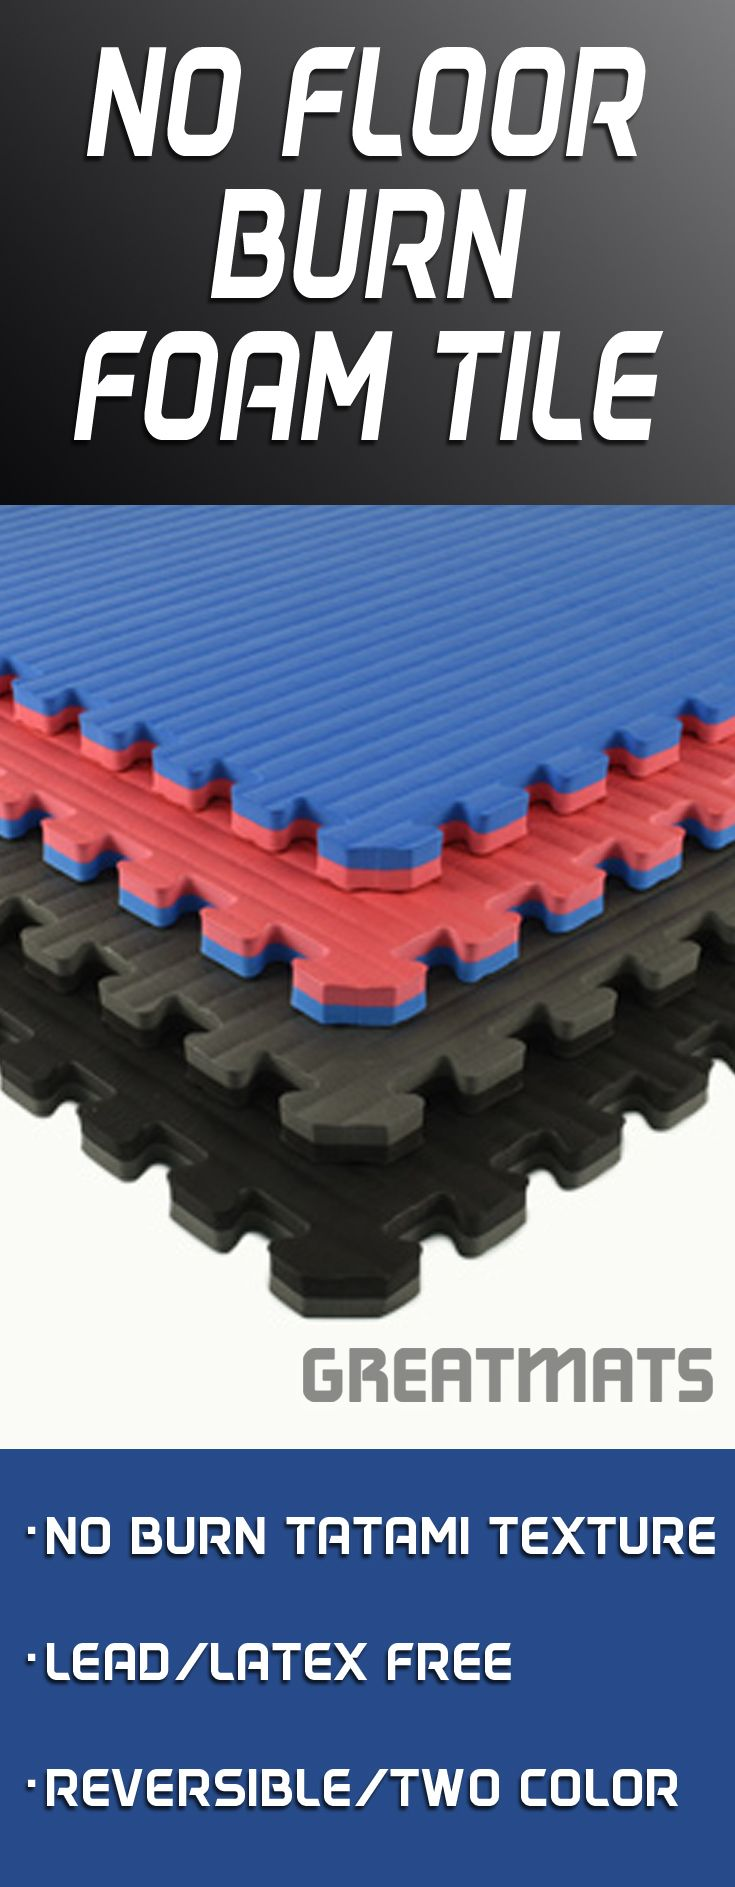 Free of lead and latex this foam floor tile also protects your free of lead and latex this foam floor tile also protects your skins with its dailygadgetfo Choice Image